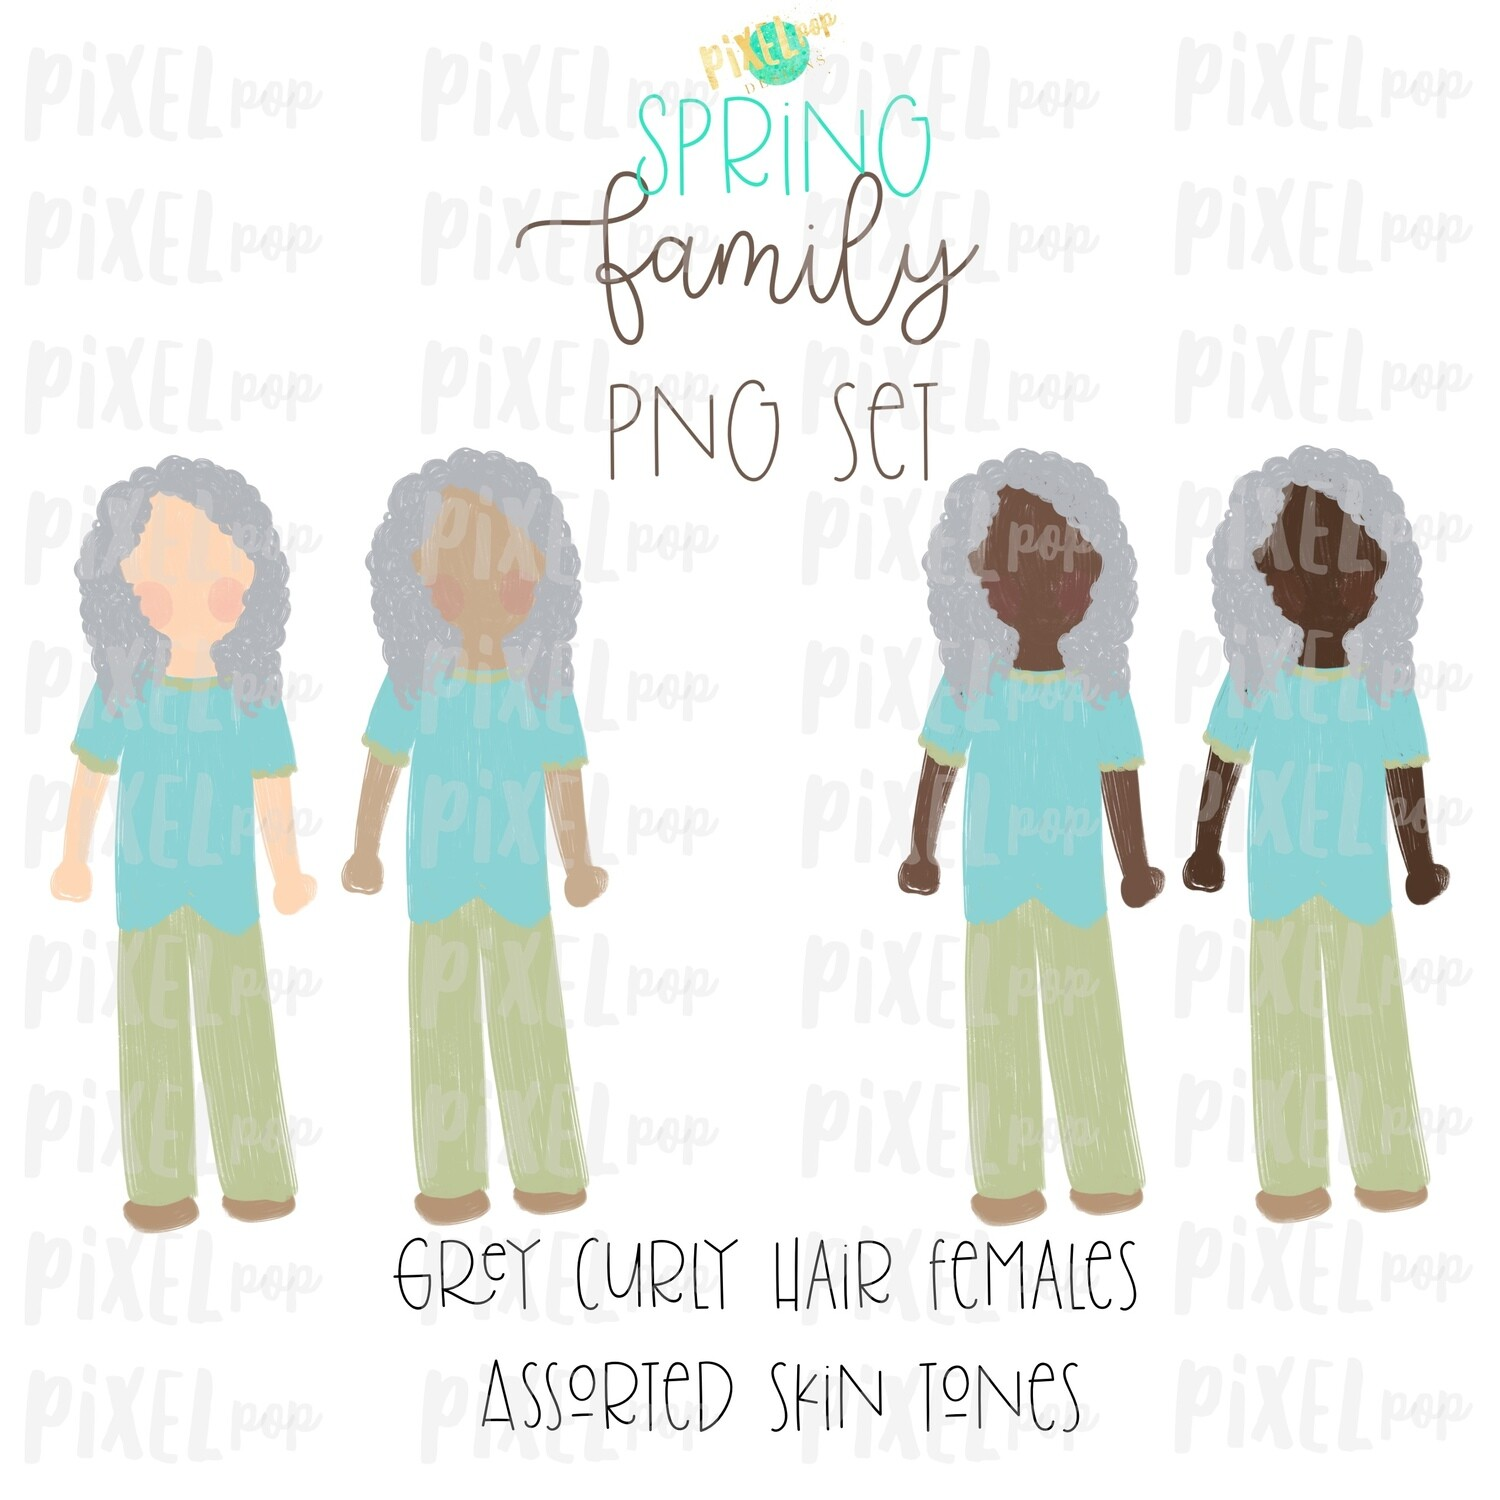 SPRING Grey Haired Females Assorted Skin Tones Stick People Figure Family Members Set PNG Sublimation | Family | Portrait